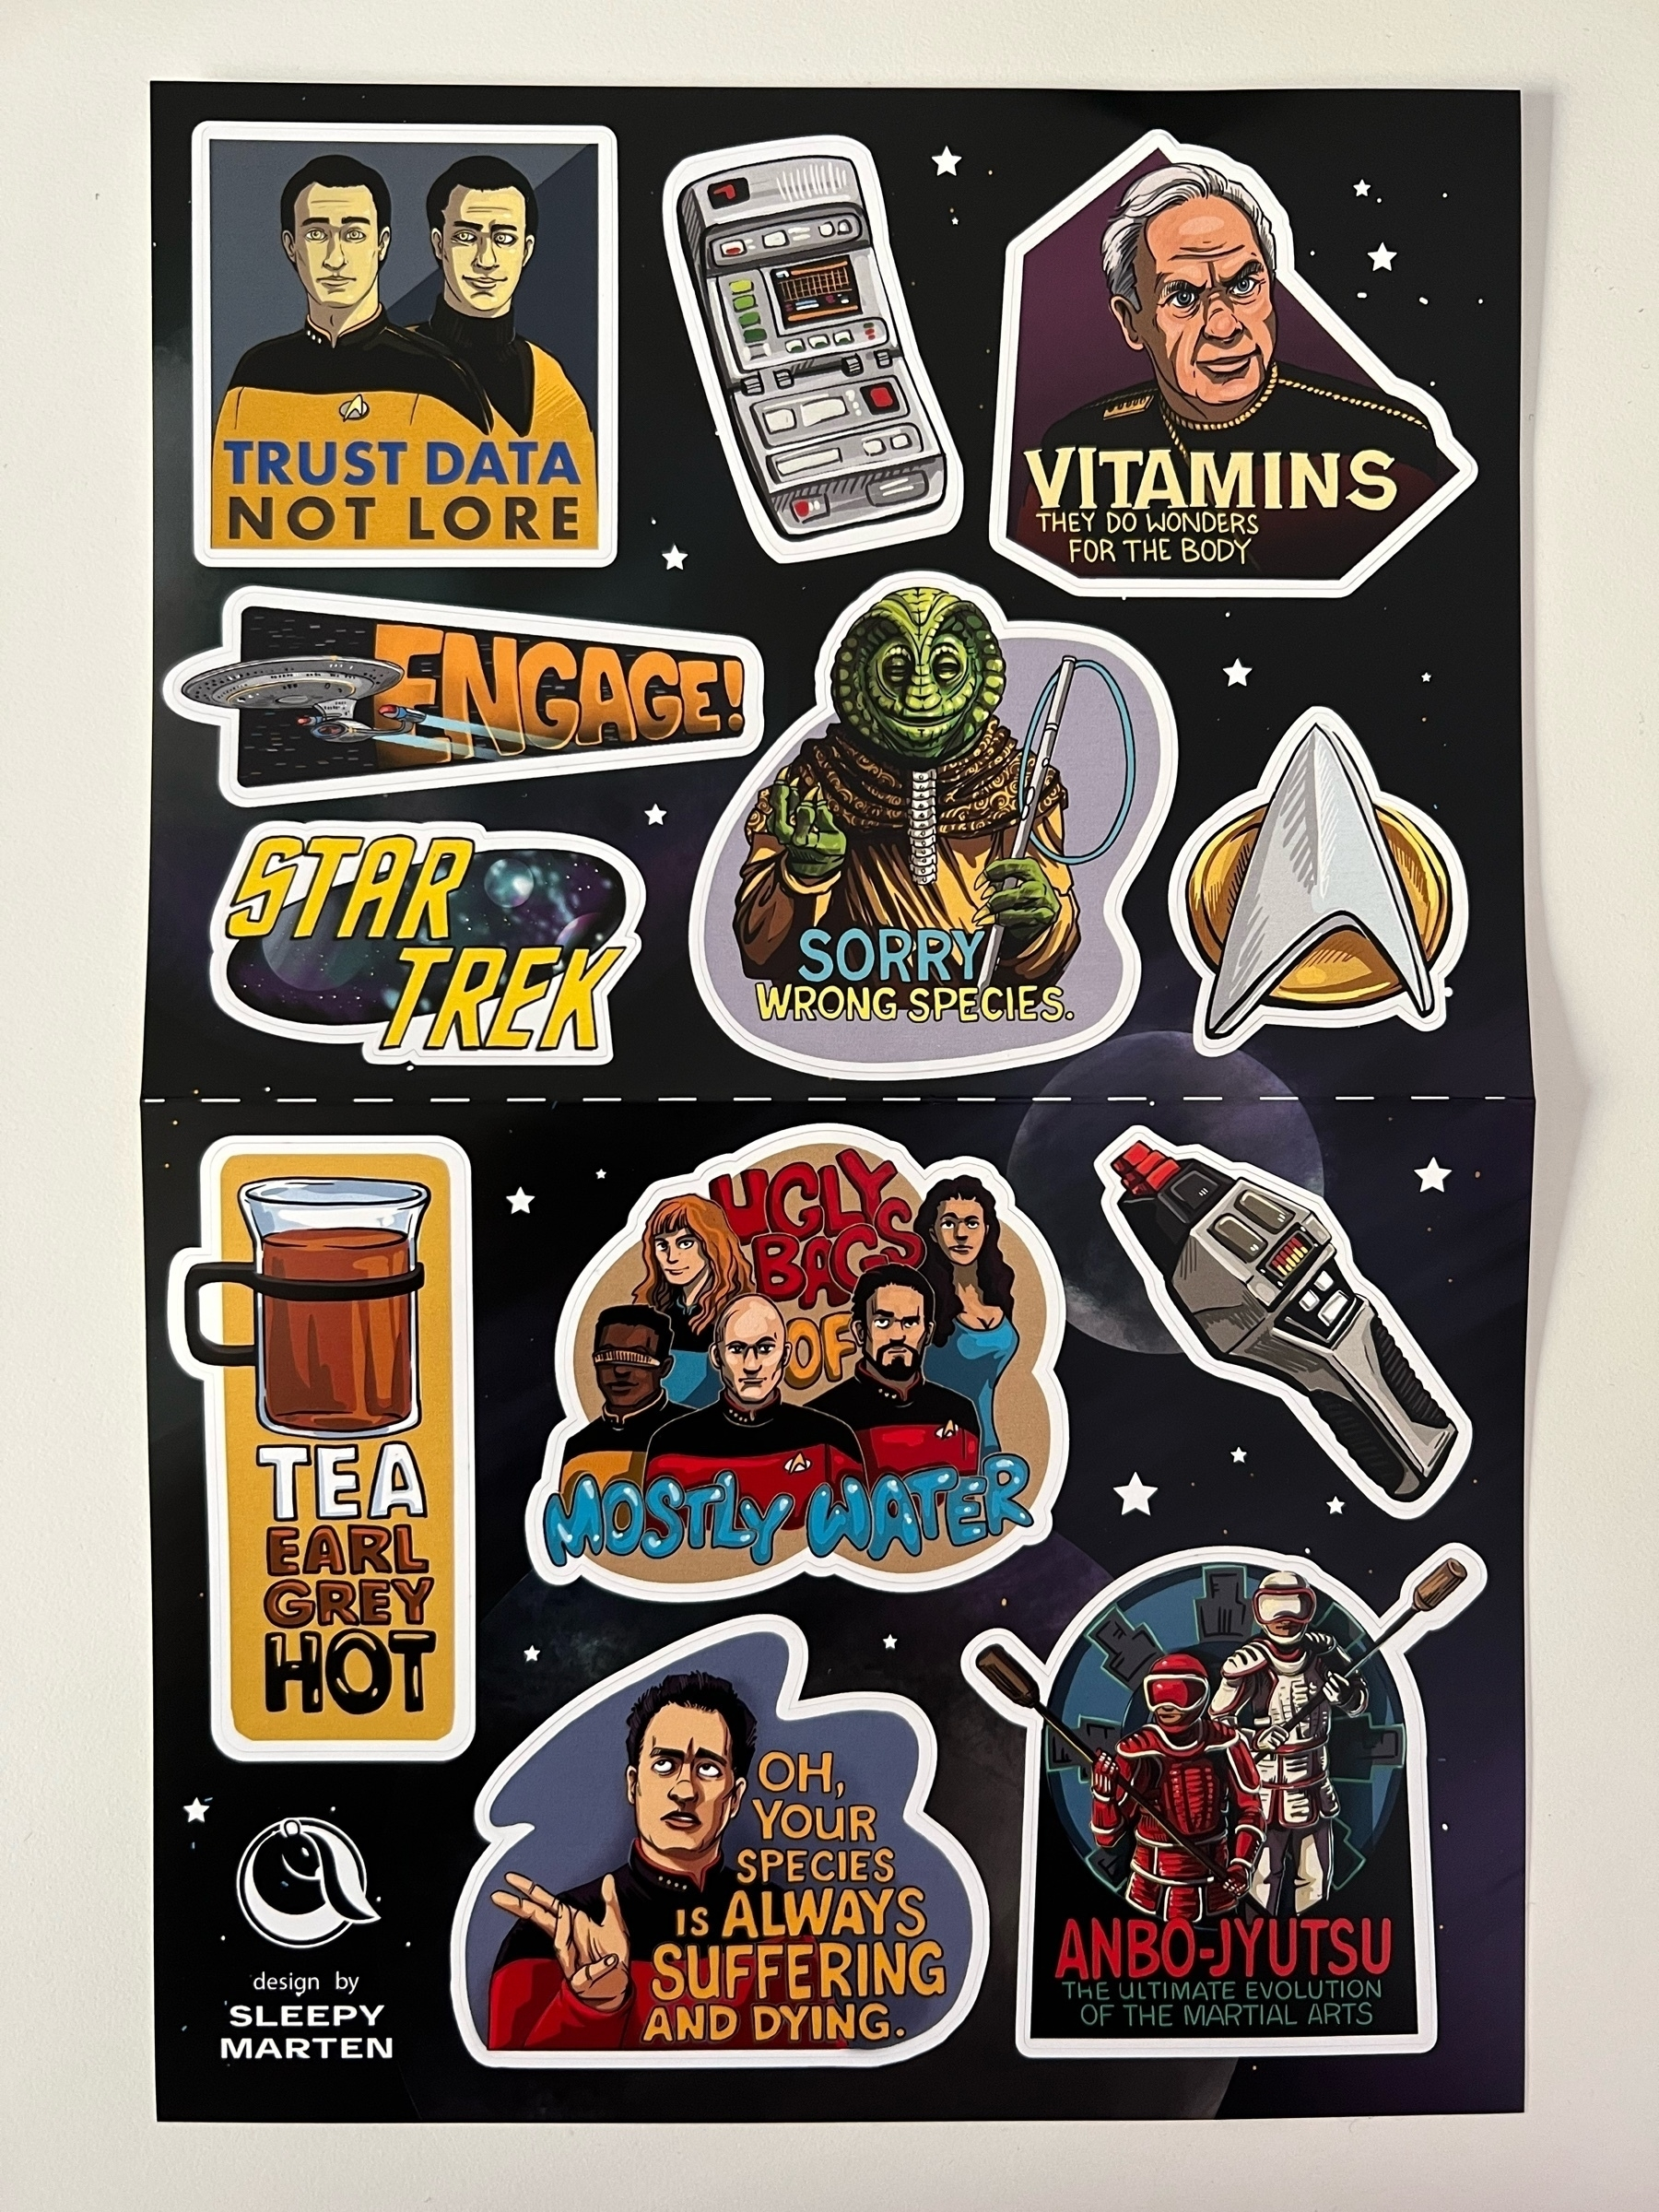 Sheet with a number of Star Trek-themed stickers based on fan art designs by the Etsy seller Sleepy Marten.